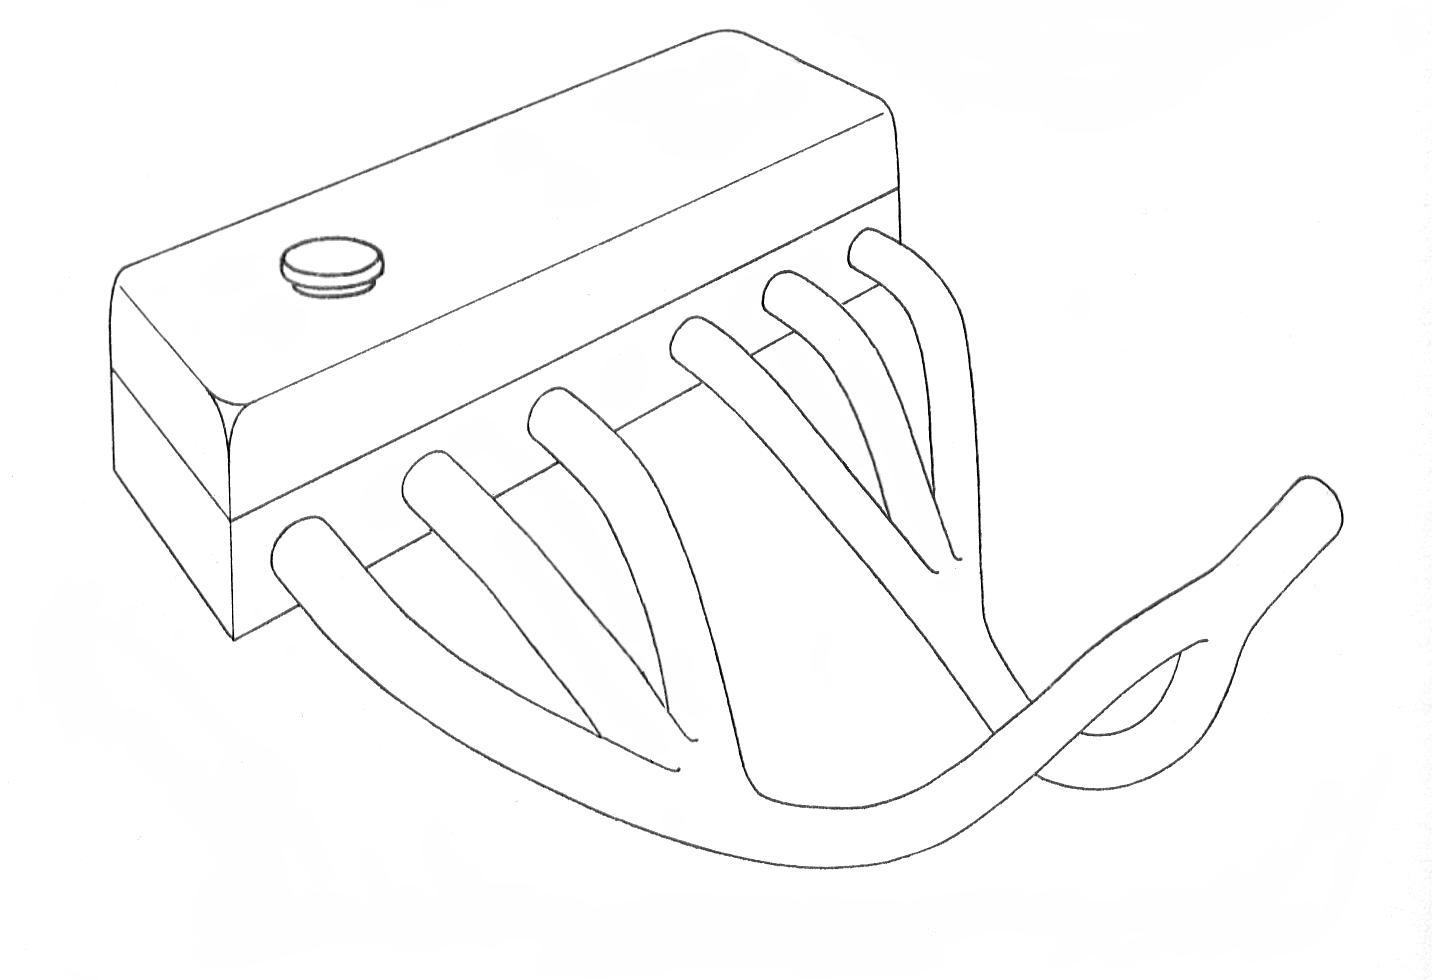 Classic short branch tubular manifolds for a six cylinder engine